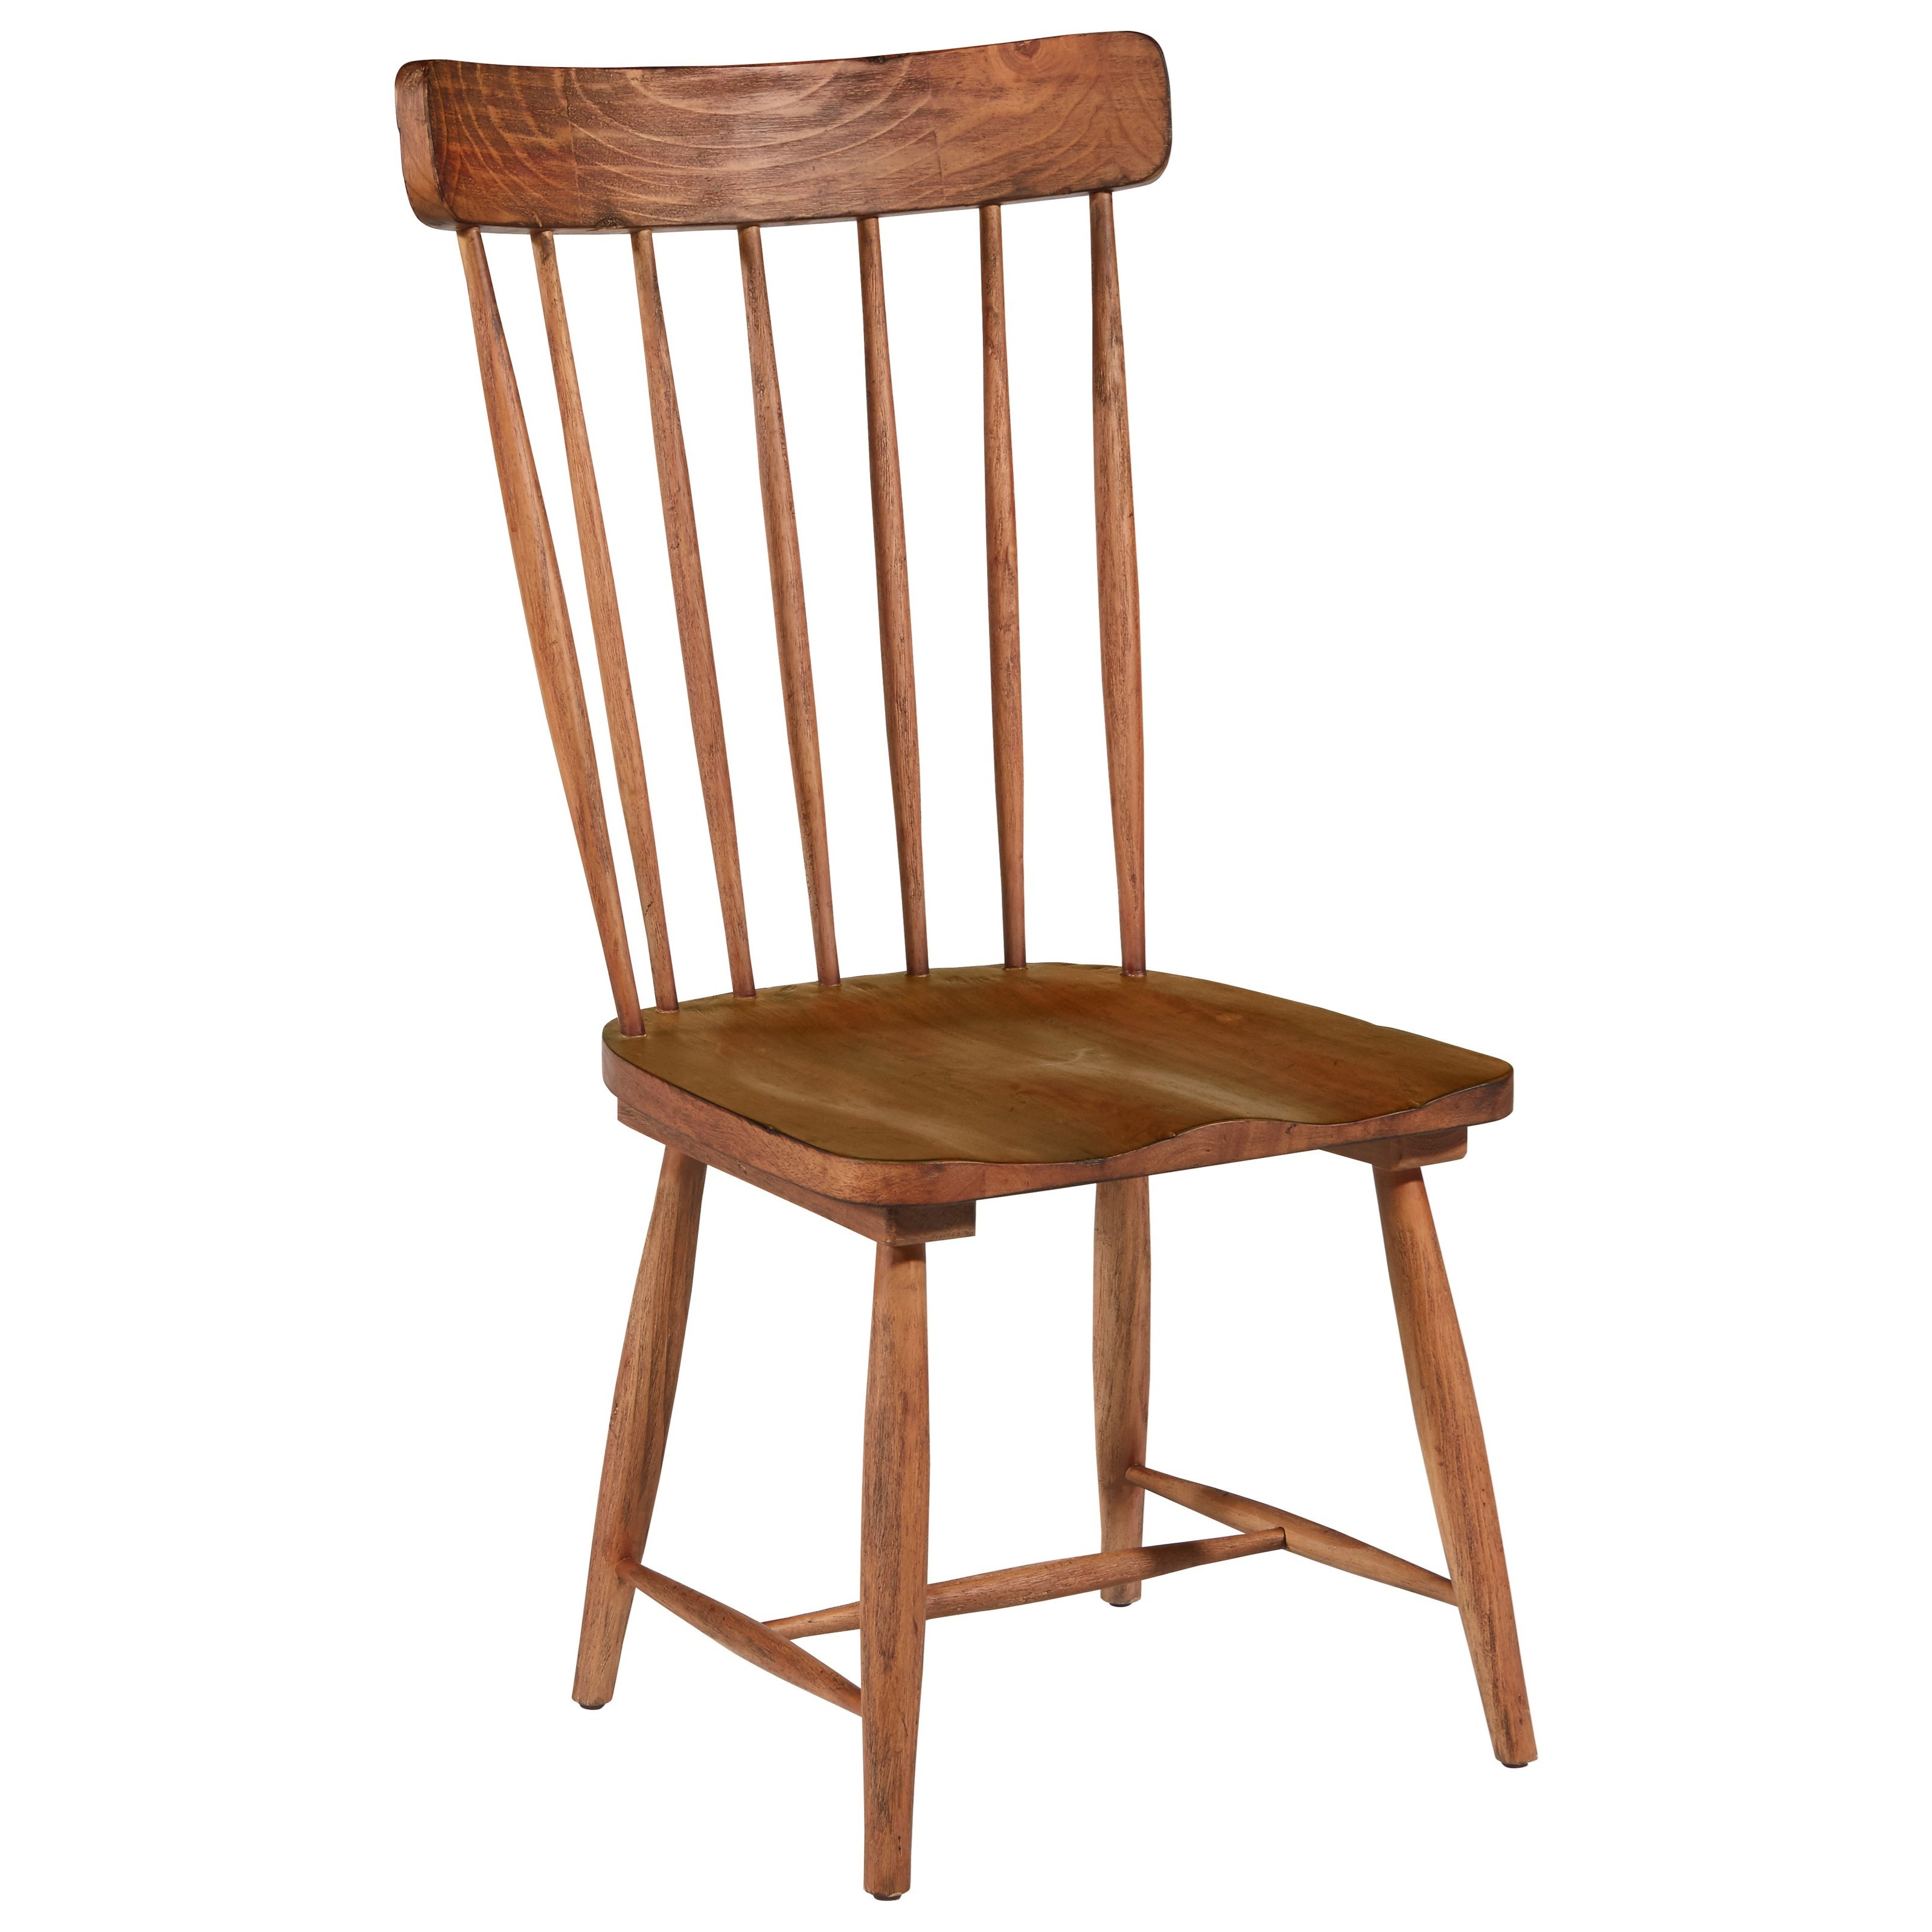 Magnolia Home by Joanna Gaines Farmhouse Spindle Back Side Chair - Item Number: 6010104I